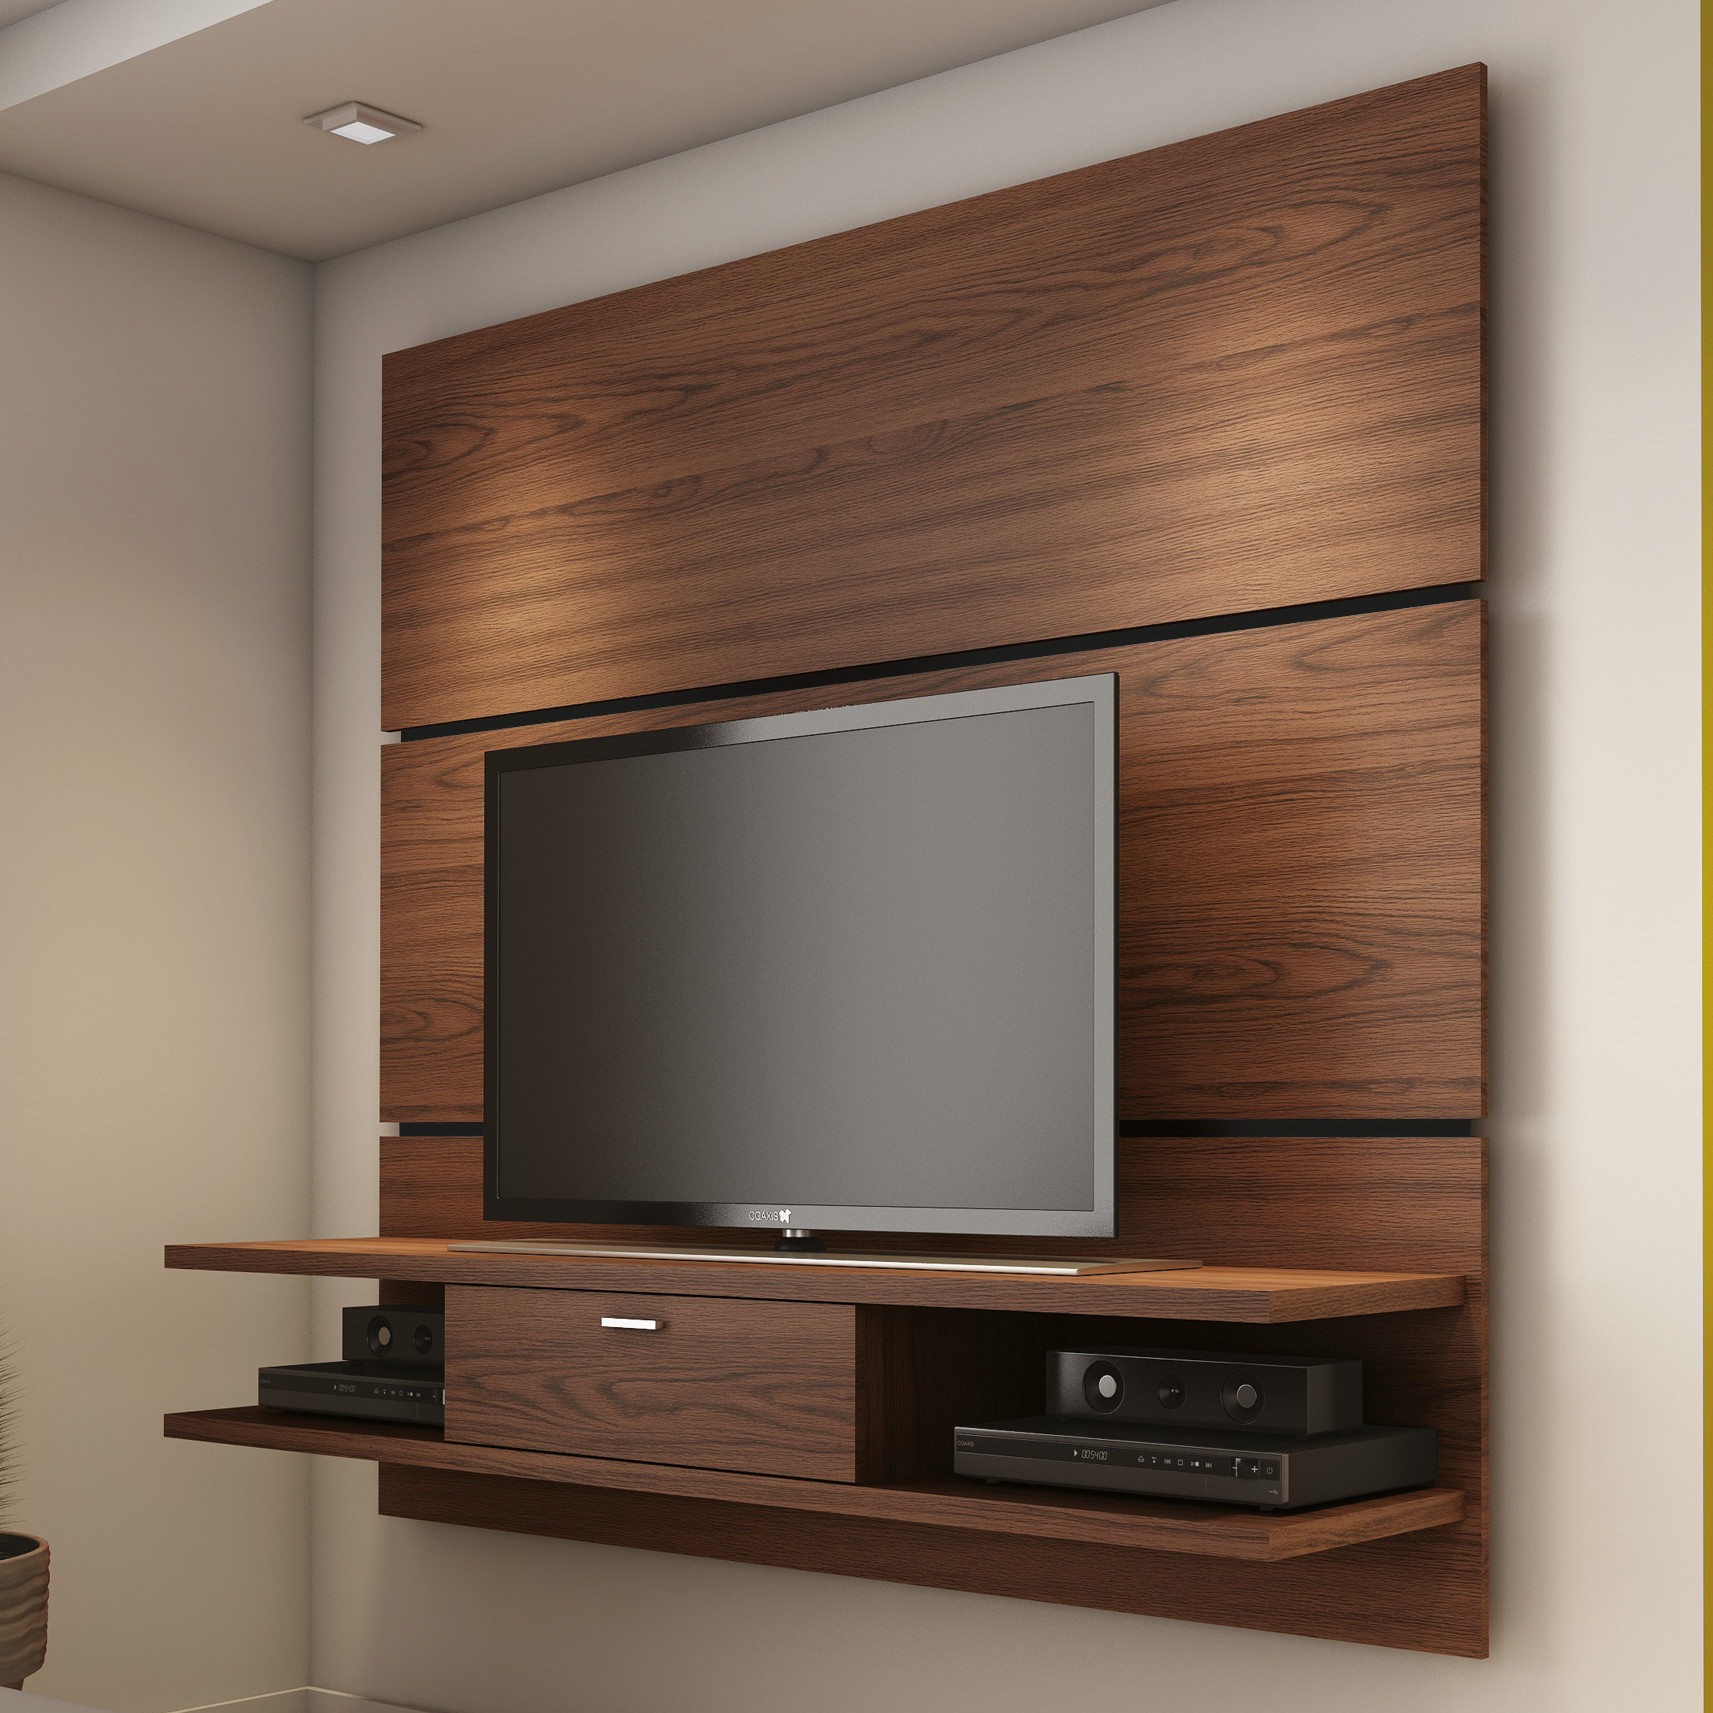 Bedroom Tv Stands: Contemporary Wall TV Stand Ideas For Modern Livingroom